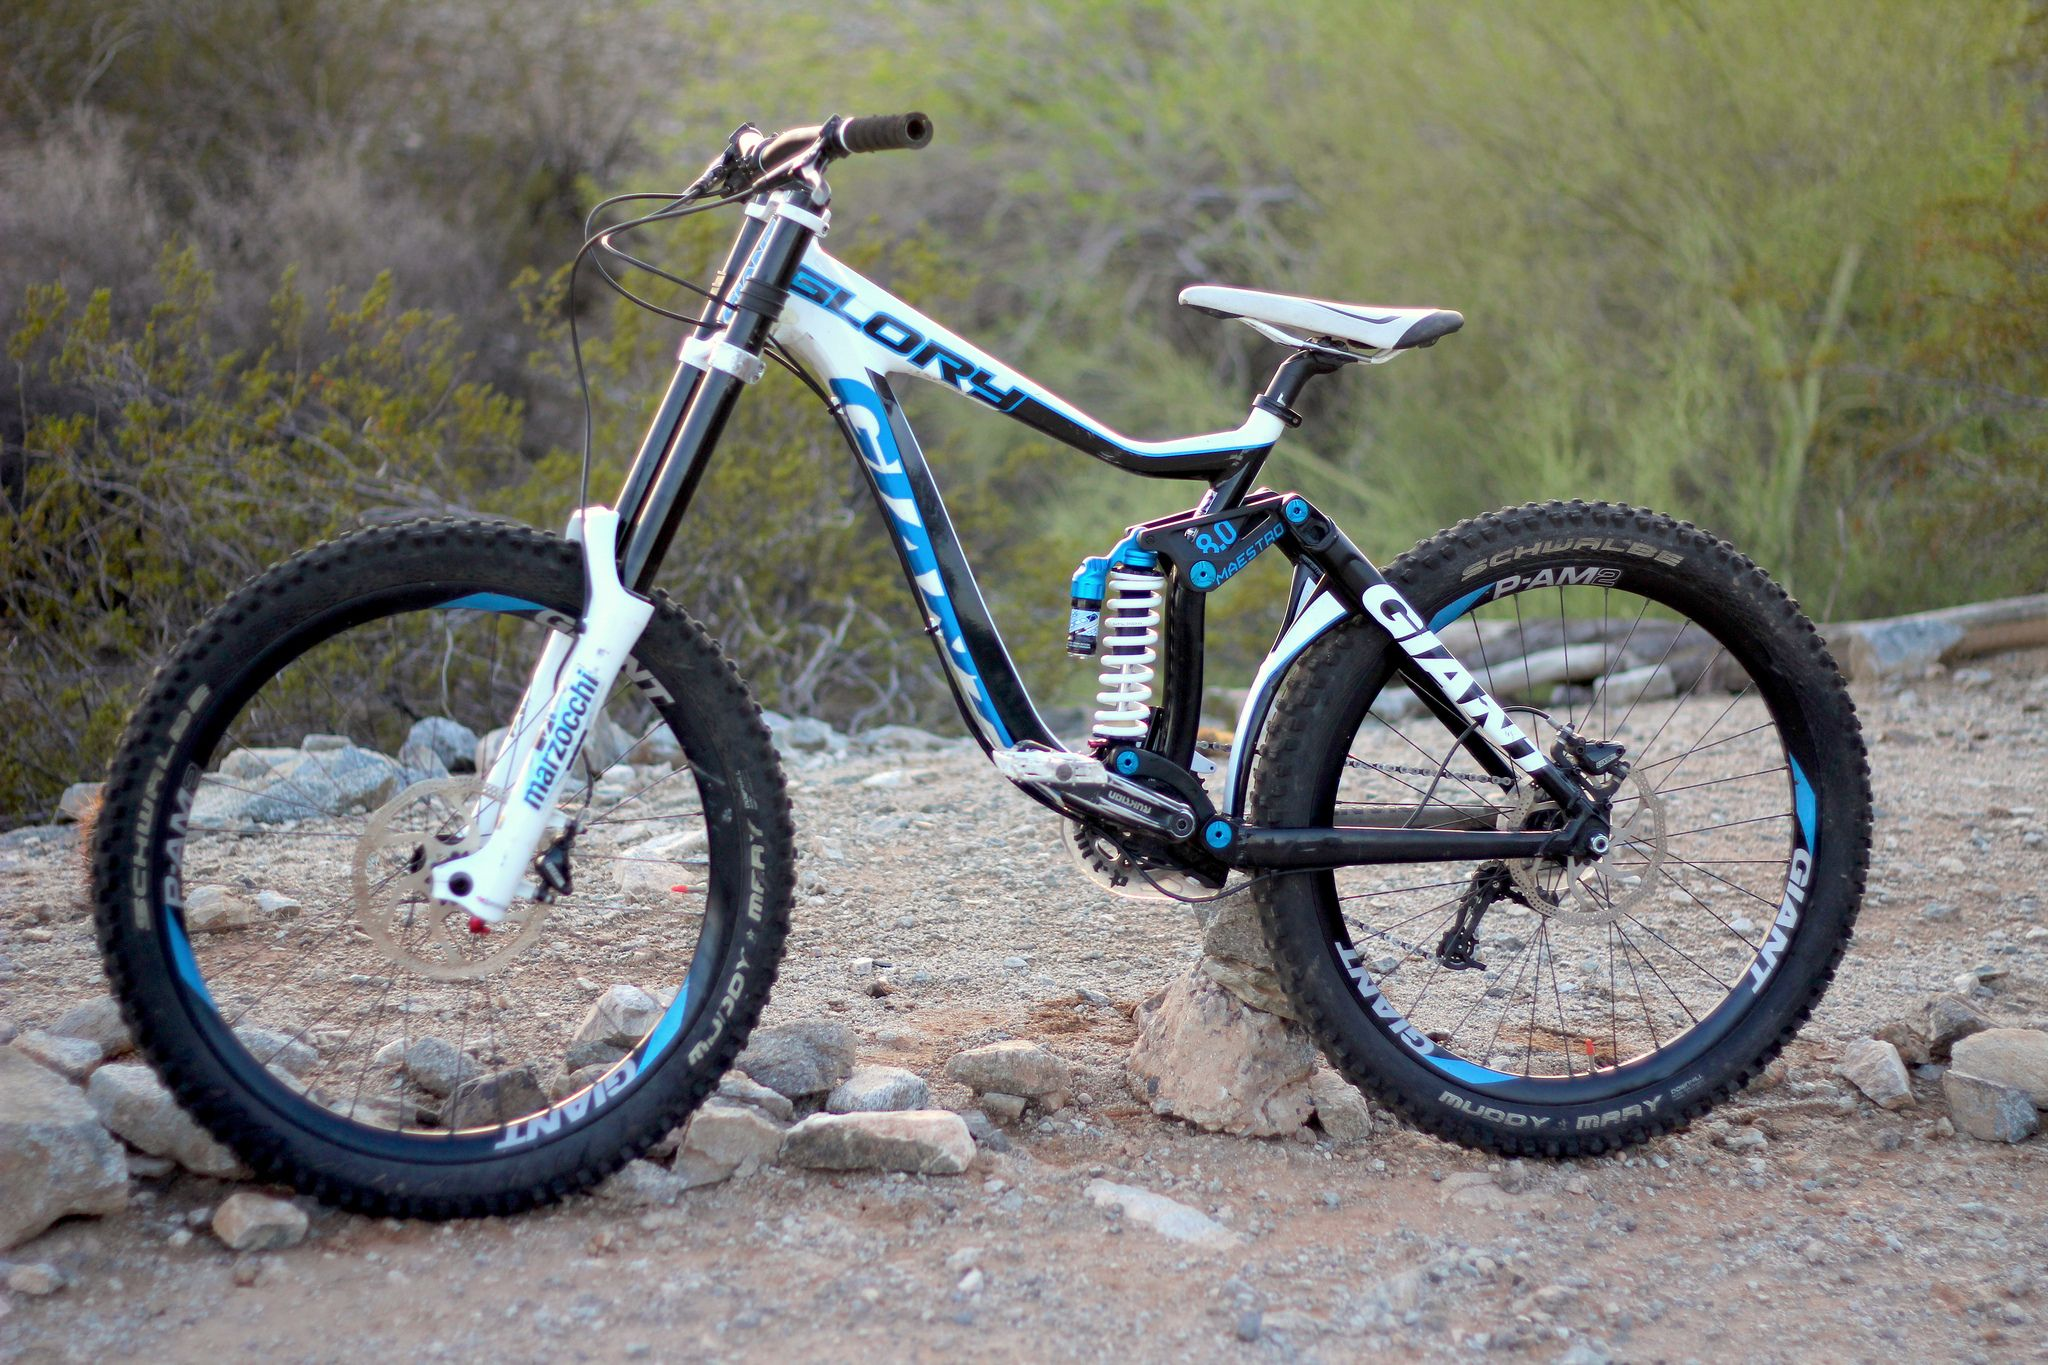 Giant Bike Wallpapers Widescreen Giant Bikes Downhill Mountain